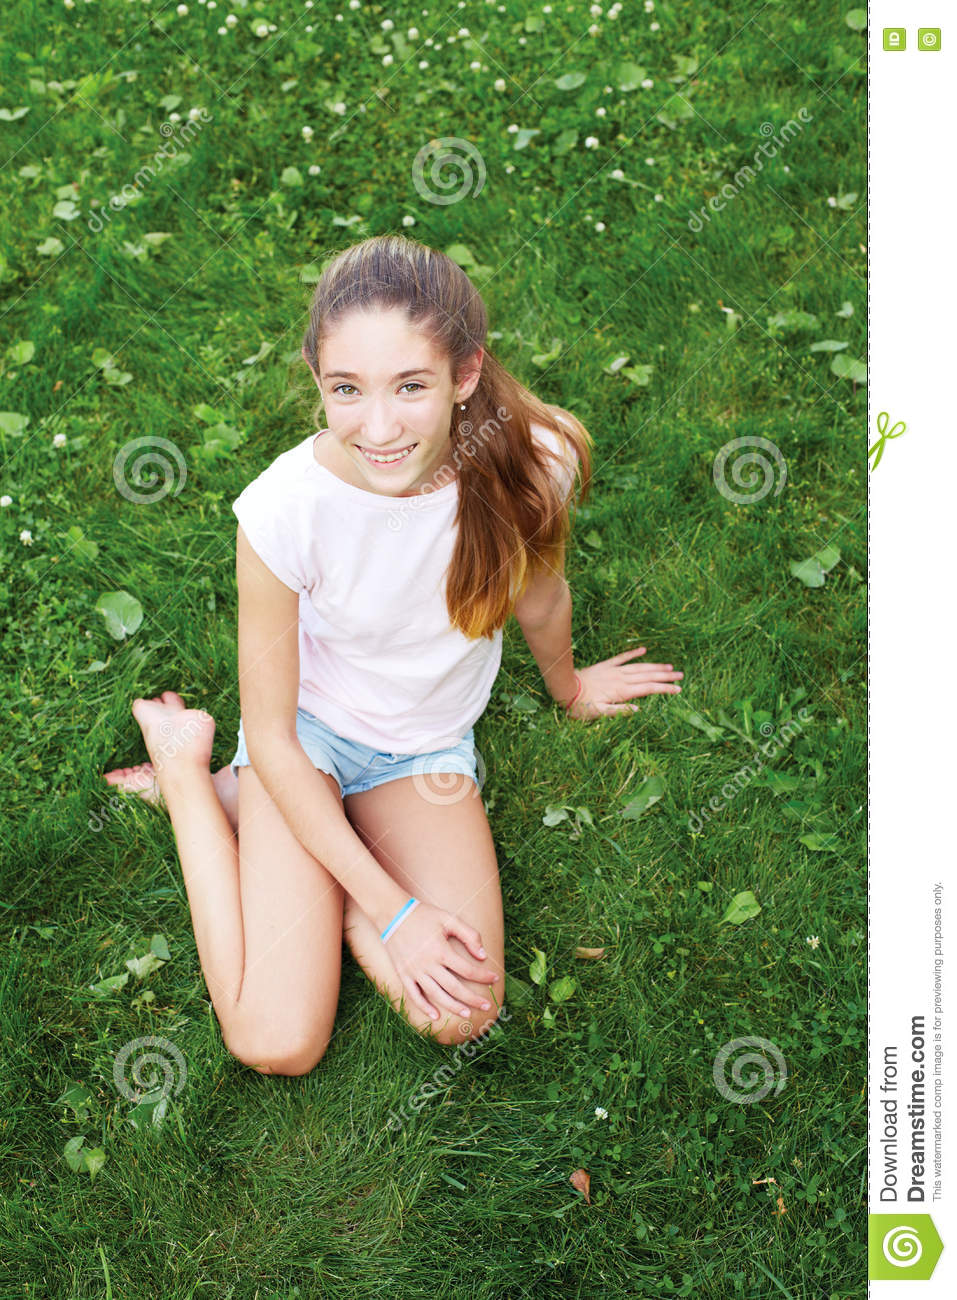 Cute Teen Girl Sitting On The Grass In The Park